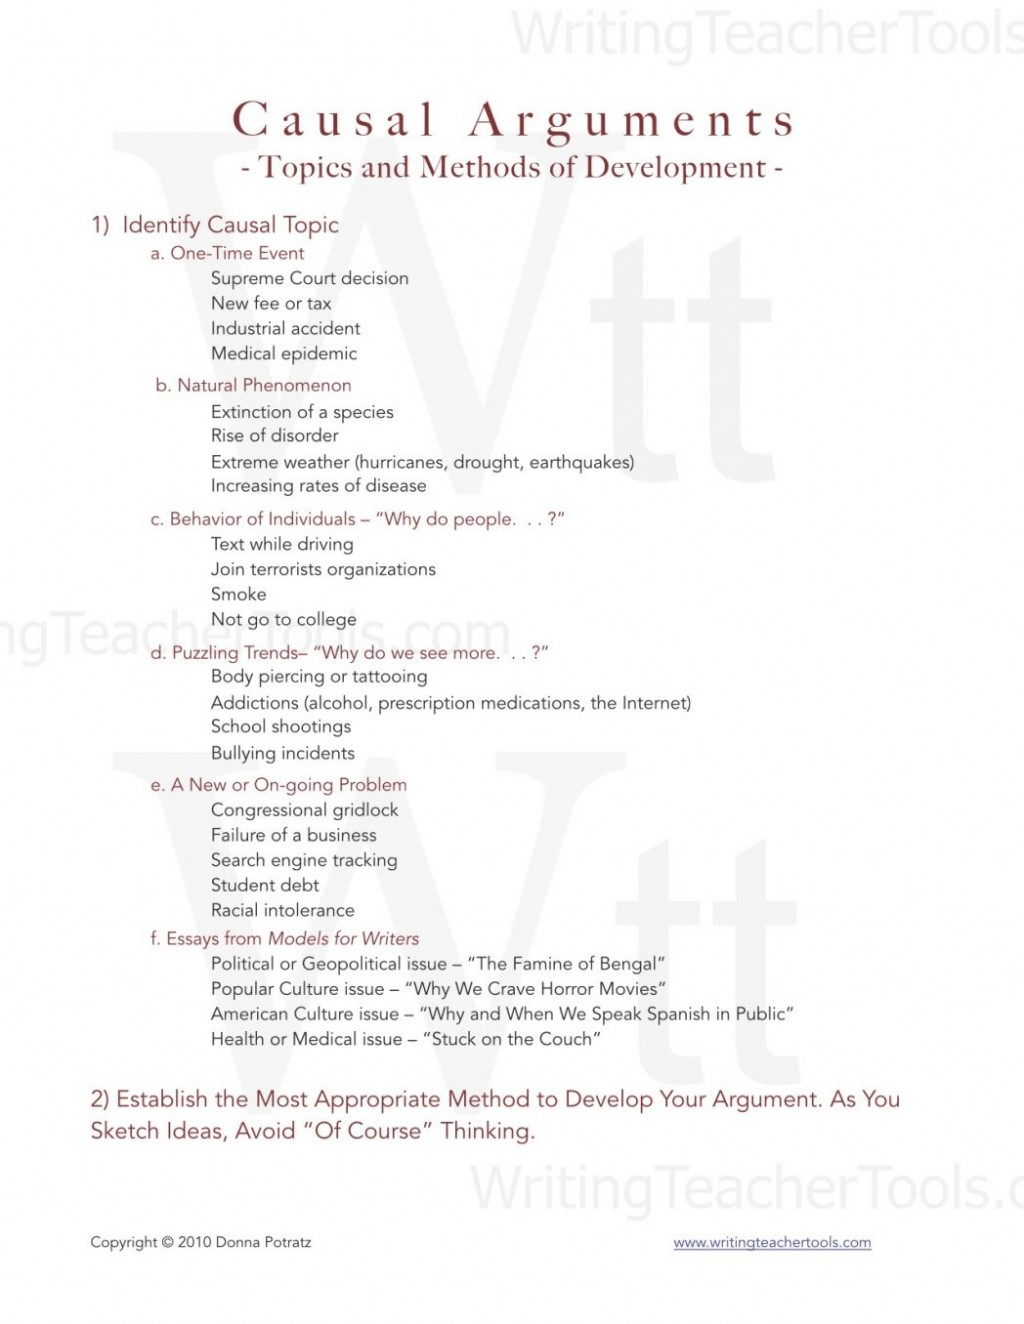 001 Causal Essay Topics Example Analytical Topic Ideas Of An Analysis Process For College Students Argument And Methods Develo Rare Chain Good Large